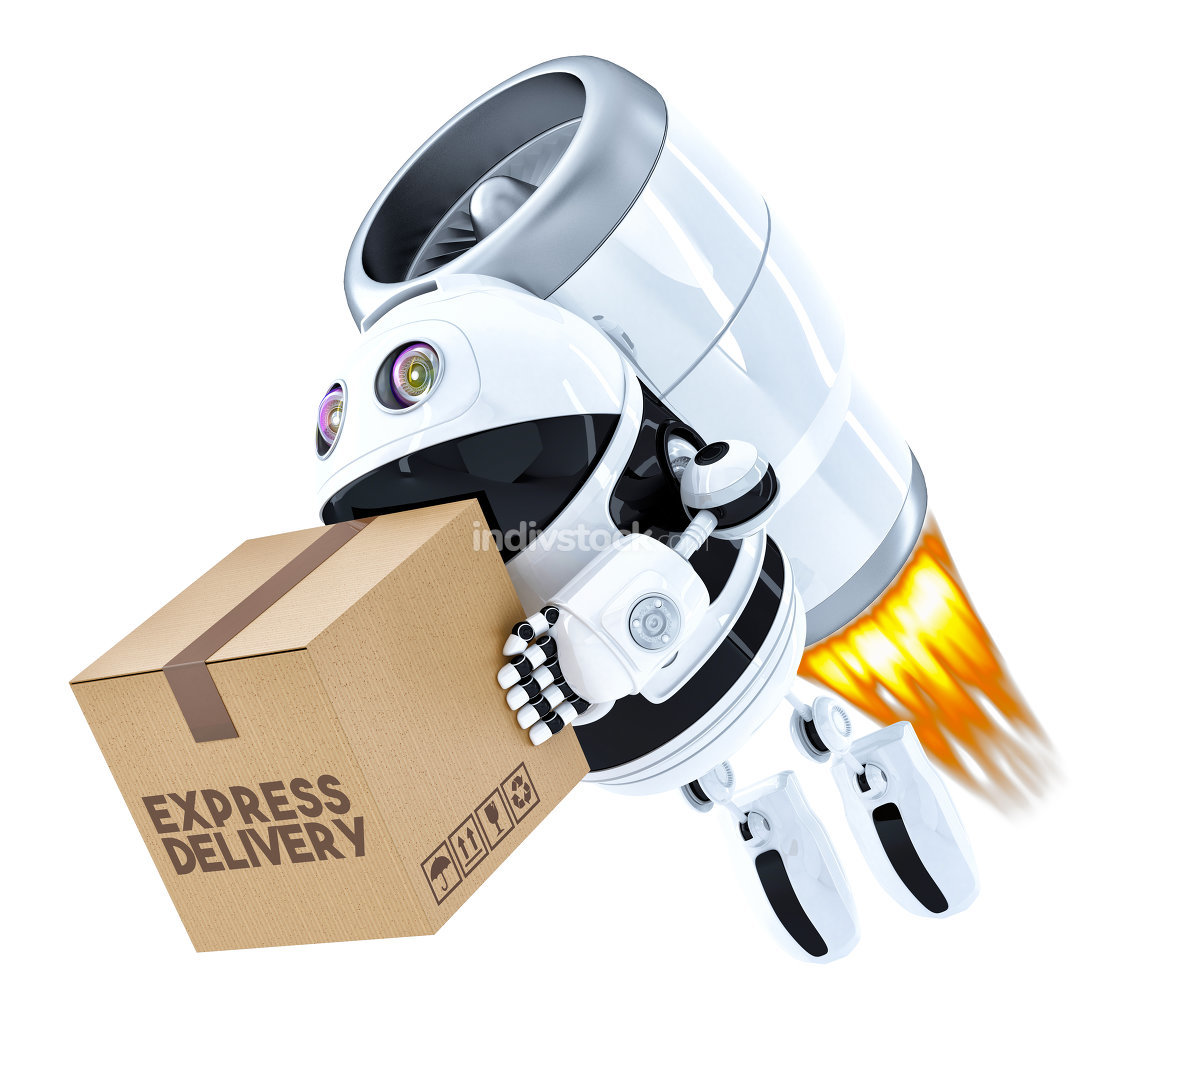 Rocket Delivery Robot flying with package. Isolated. Contains cl